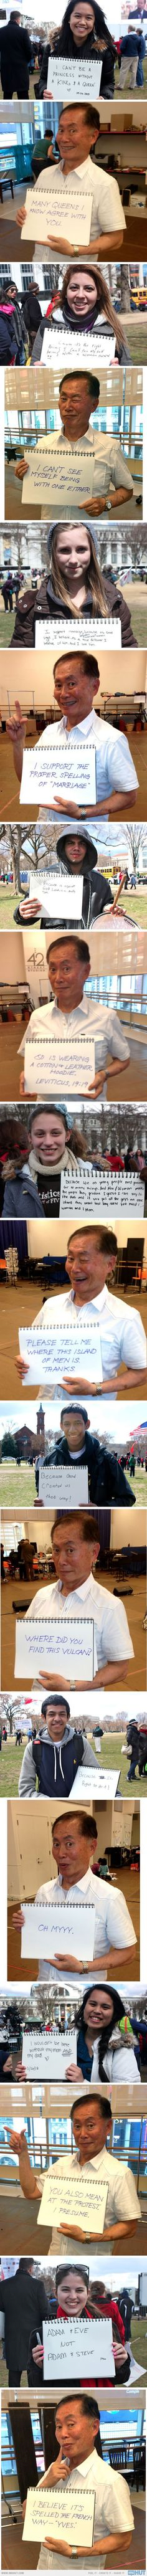 -George Takei Responds To Traditional Marriage Fans- I'M DYING.  OHHHHH MY LUNGS ARE FAILING ME.  XD  I love Mr. Takei!